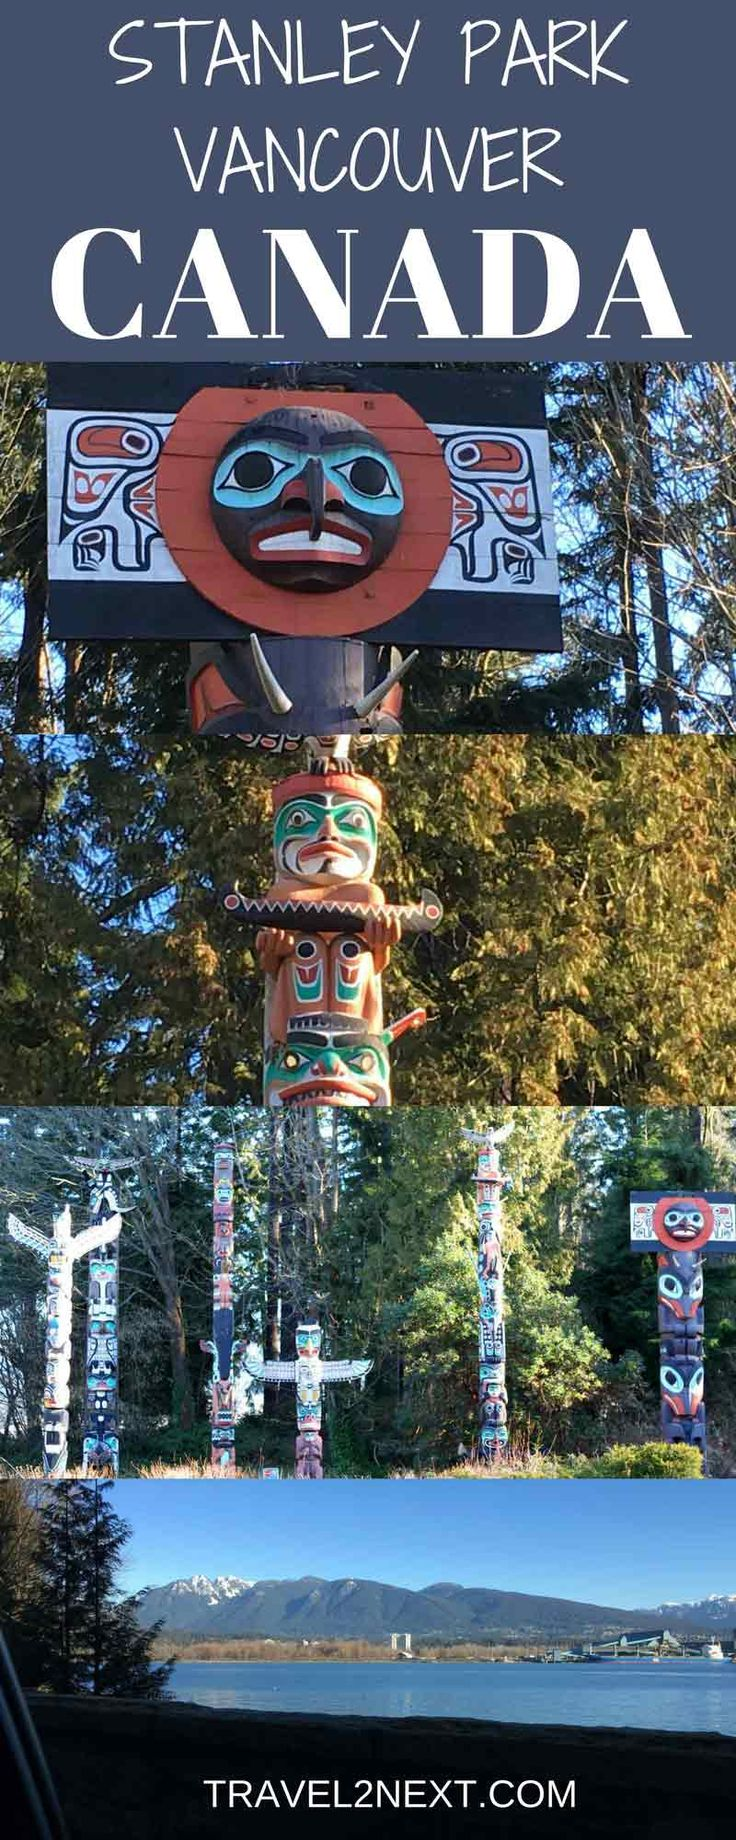 Secrets of Stanley Park totem poles – Vancouver. Look closely at the totem poles in Vancouver's Stanley Park and you'll see animals such eagles, ravens, bears, orcas, frogs and wolves etched into the poles.